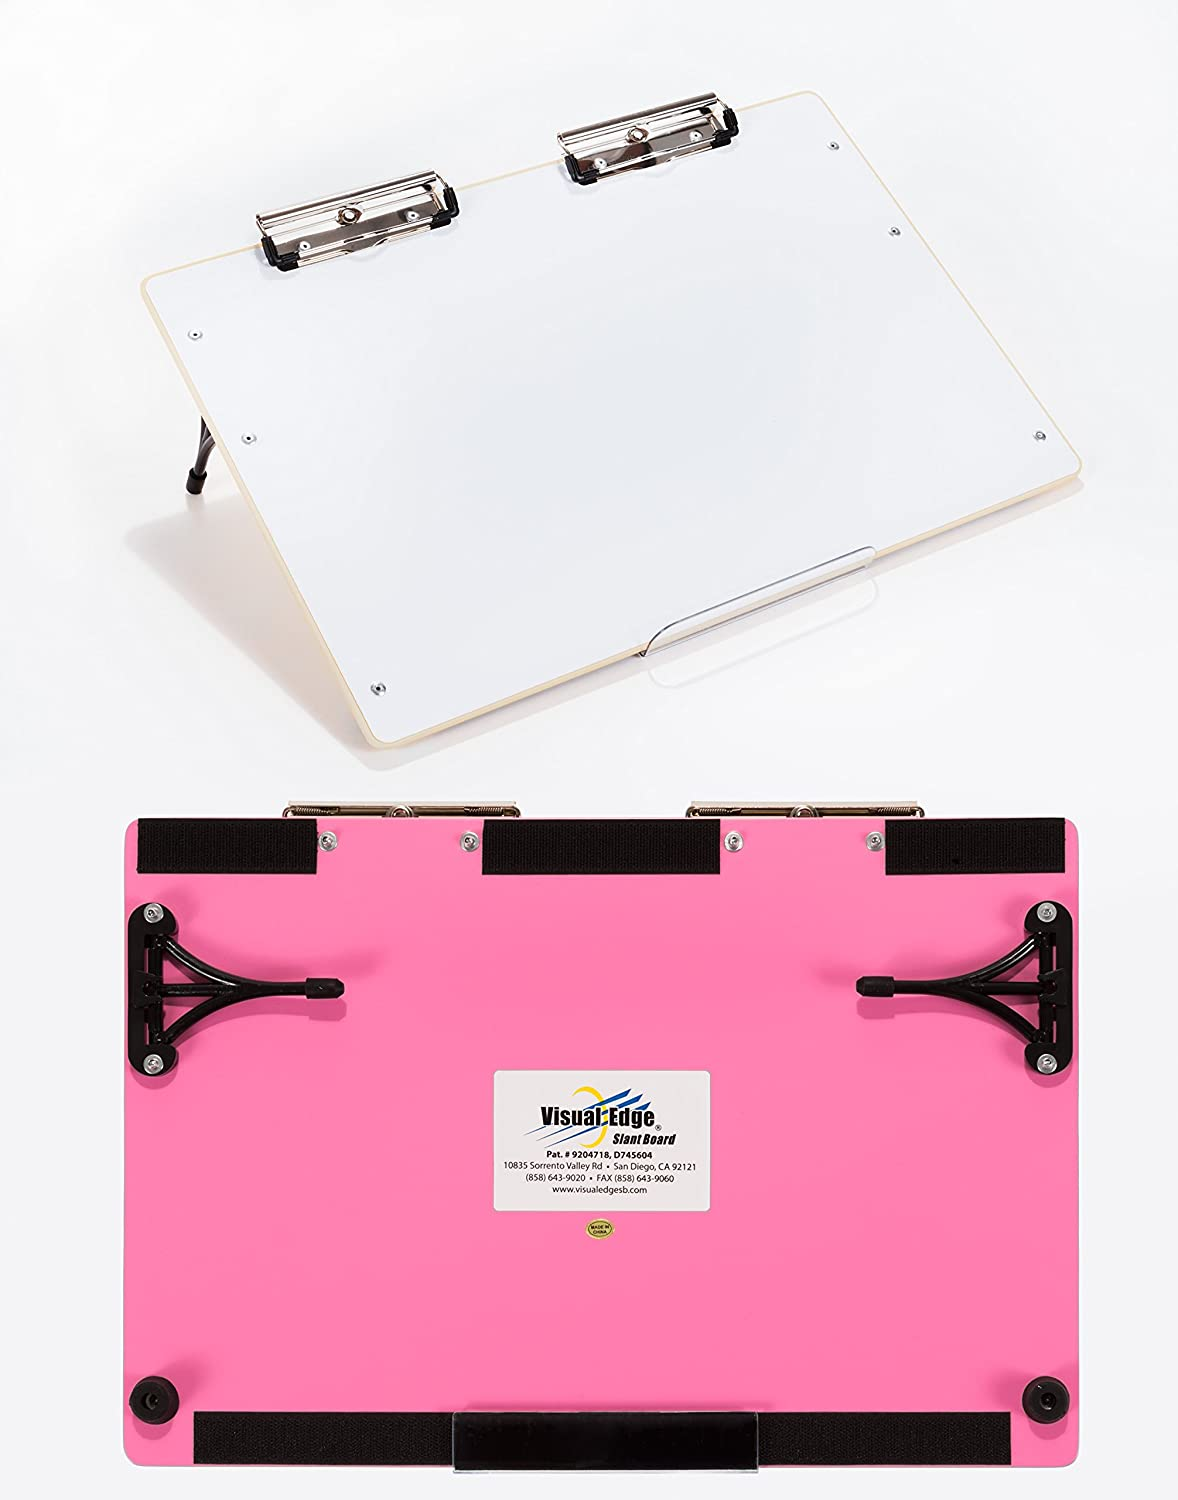 Visual Edge Slant Board (Pink), A Sloped Work Surface for Writing, Reading, Art and Speech for Optimal Learning - Portable Desktop Magnetic Dry Erase White Board with Clipboard for Kids